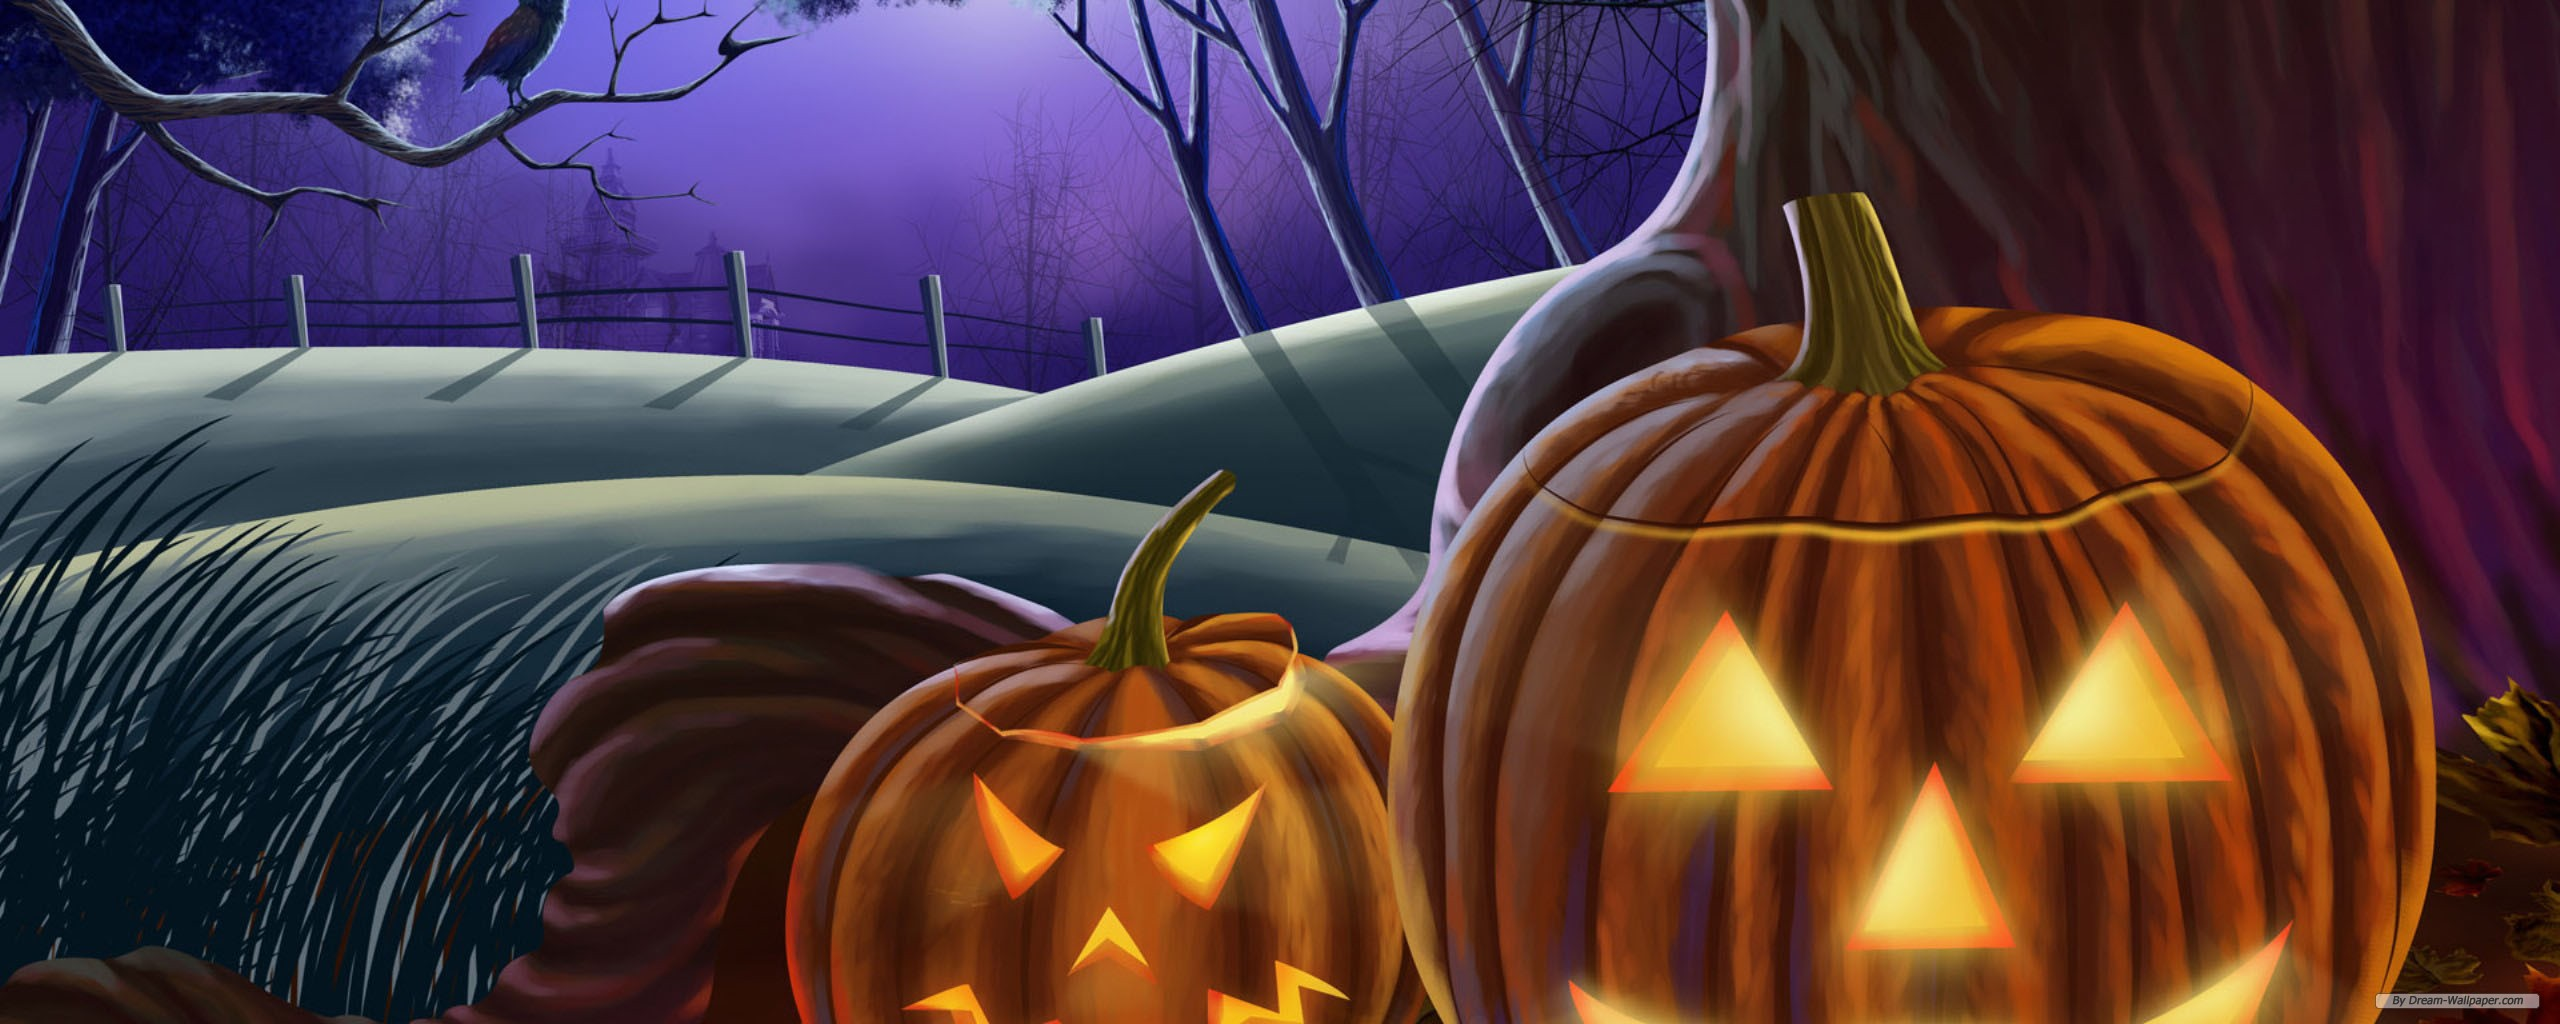 holiday wallpaperhalloween episode 6 wallpaperdual screenfree 2560x1024